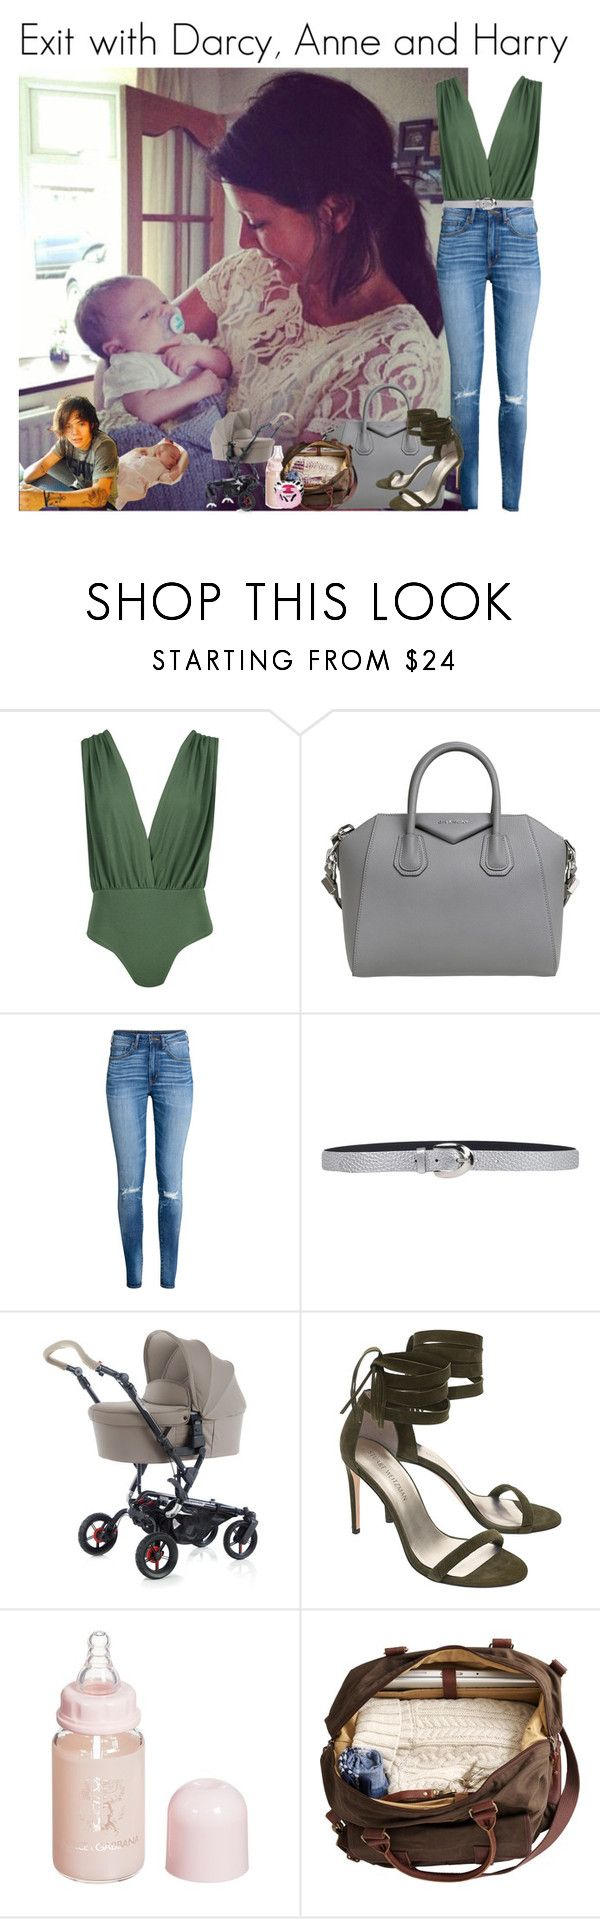 """Exit with Darcy, Anne and Harry"" by louise-smiths ❤ liked on Polyvore featuring Boohoo, Givenchy, H&M, Orciani, Stuart Weitzman and Dolce&Gabbana"